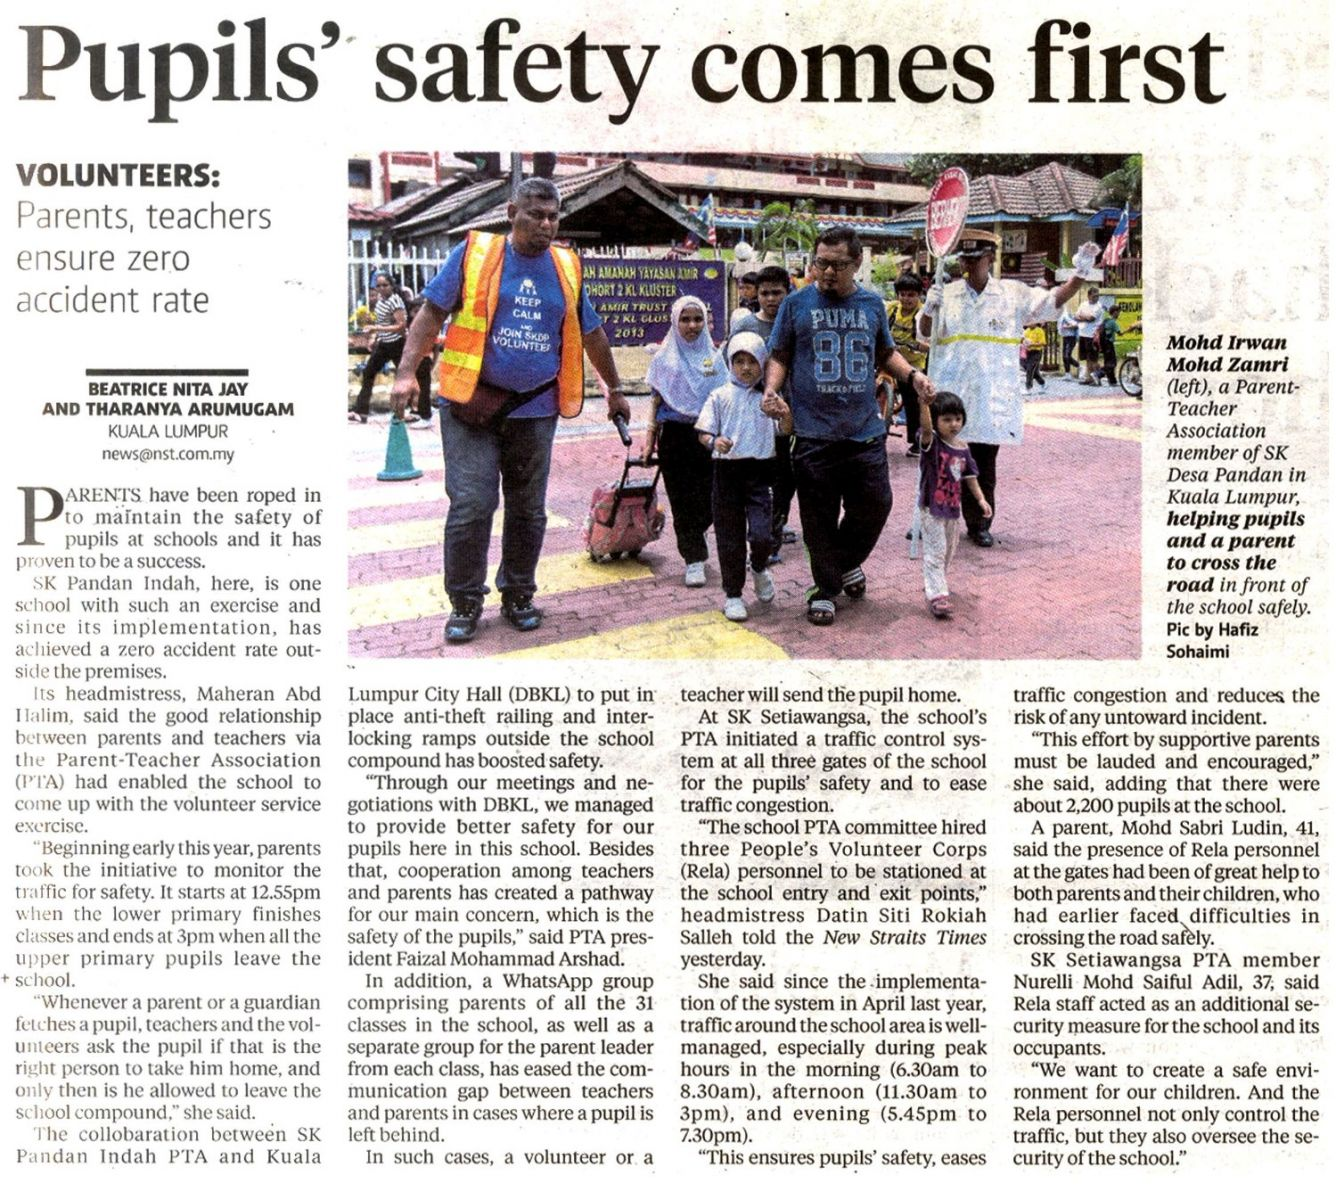 Pupils' safety comes first   New Straits Times, 29 September 2016